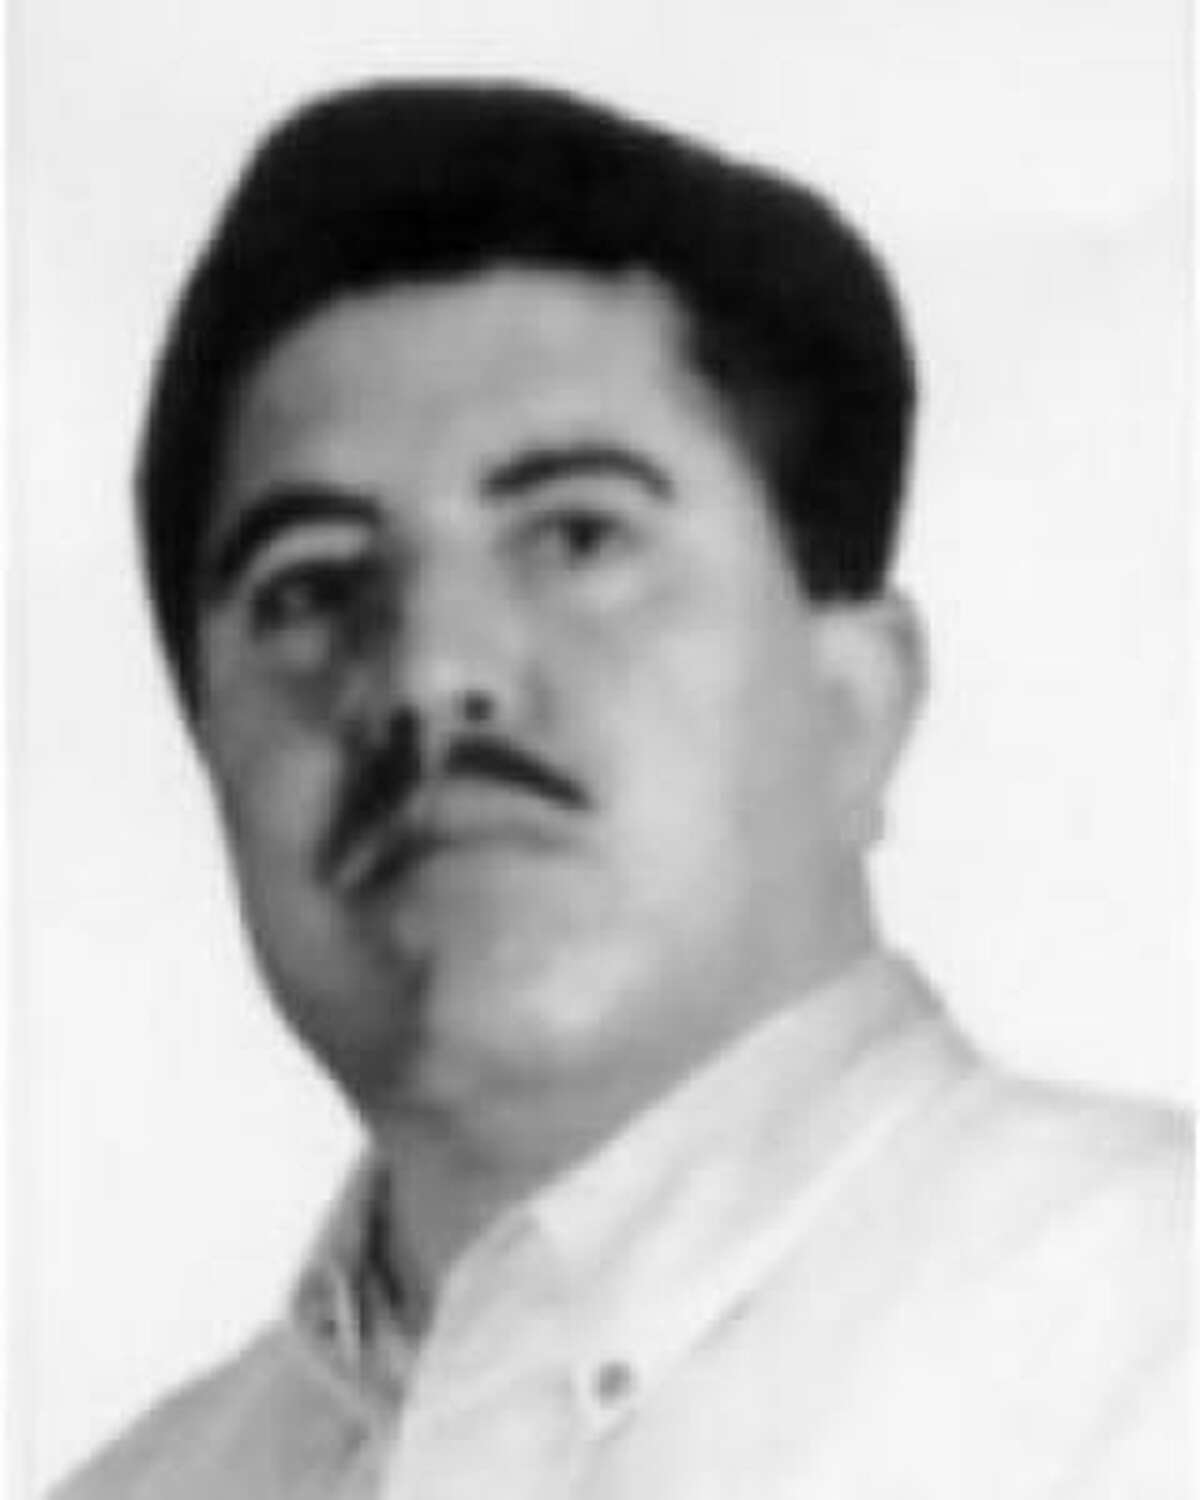 Vicente Carrillo Fuentes: On the run. Head of the Juarez cartel, wanted in the U.S.